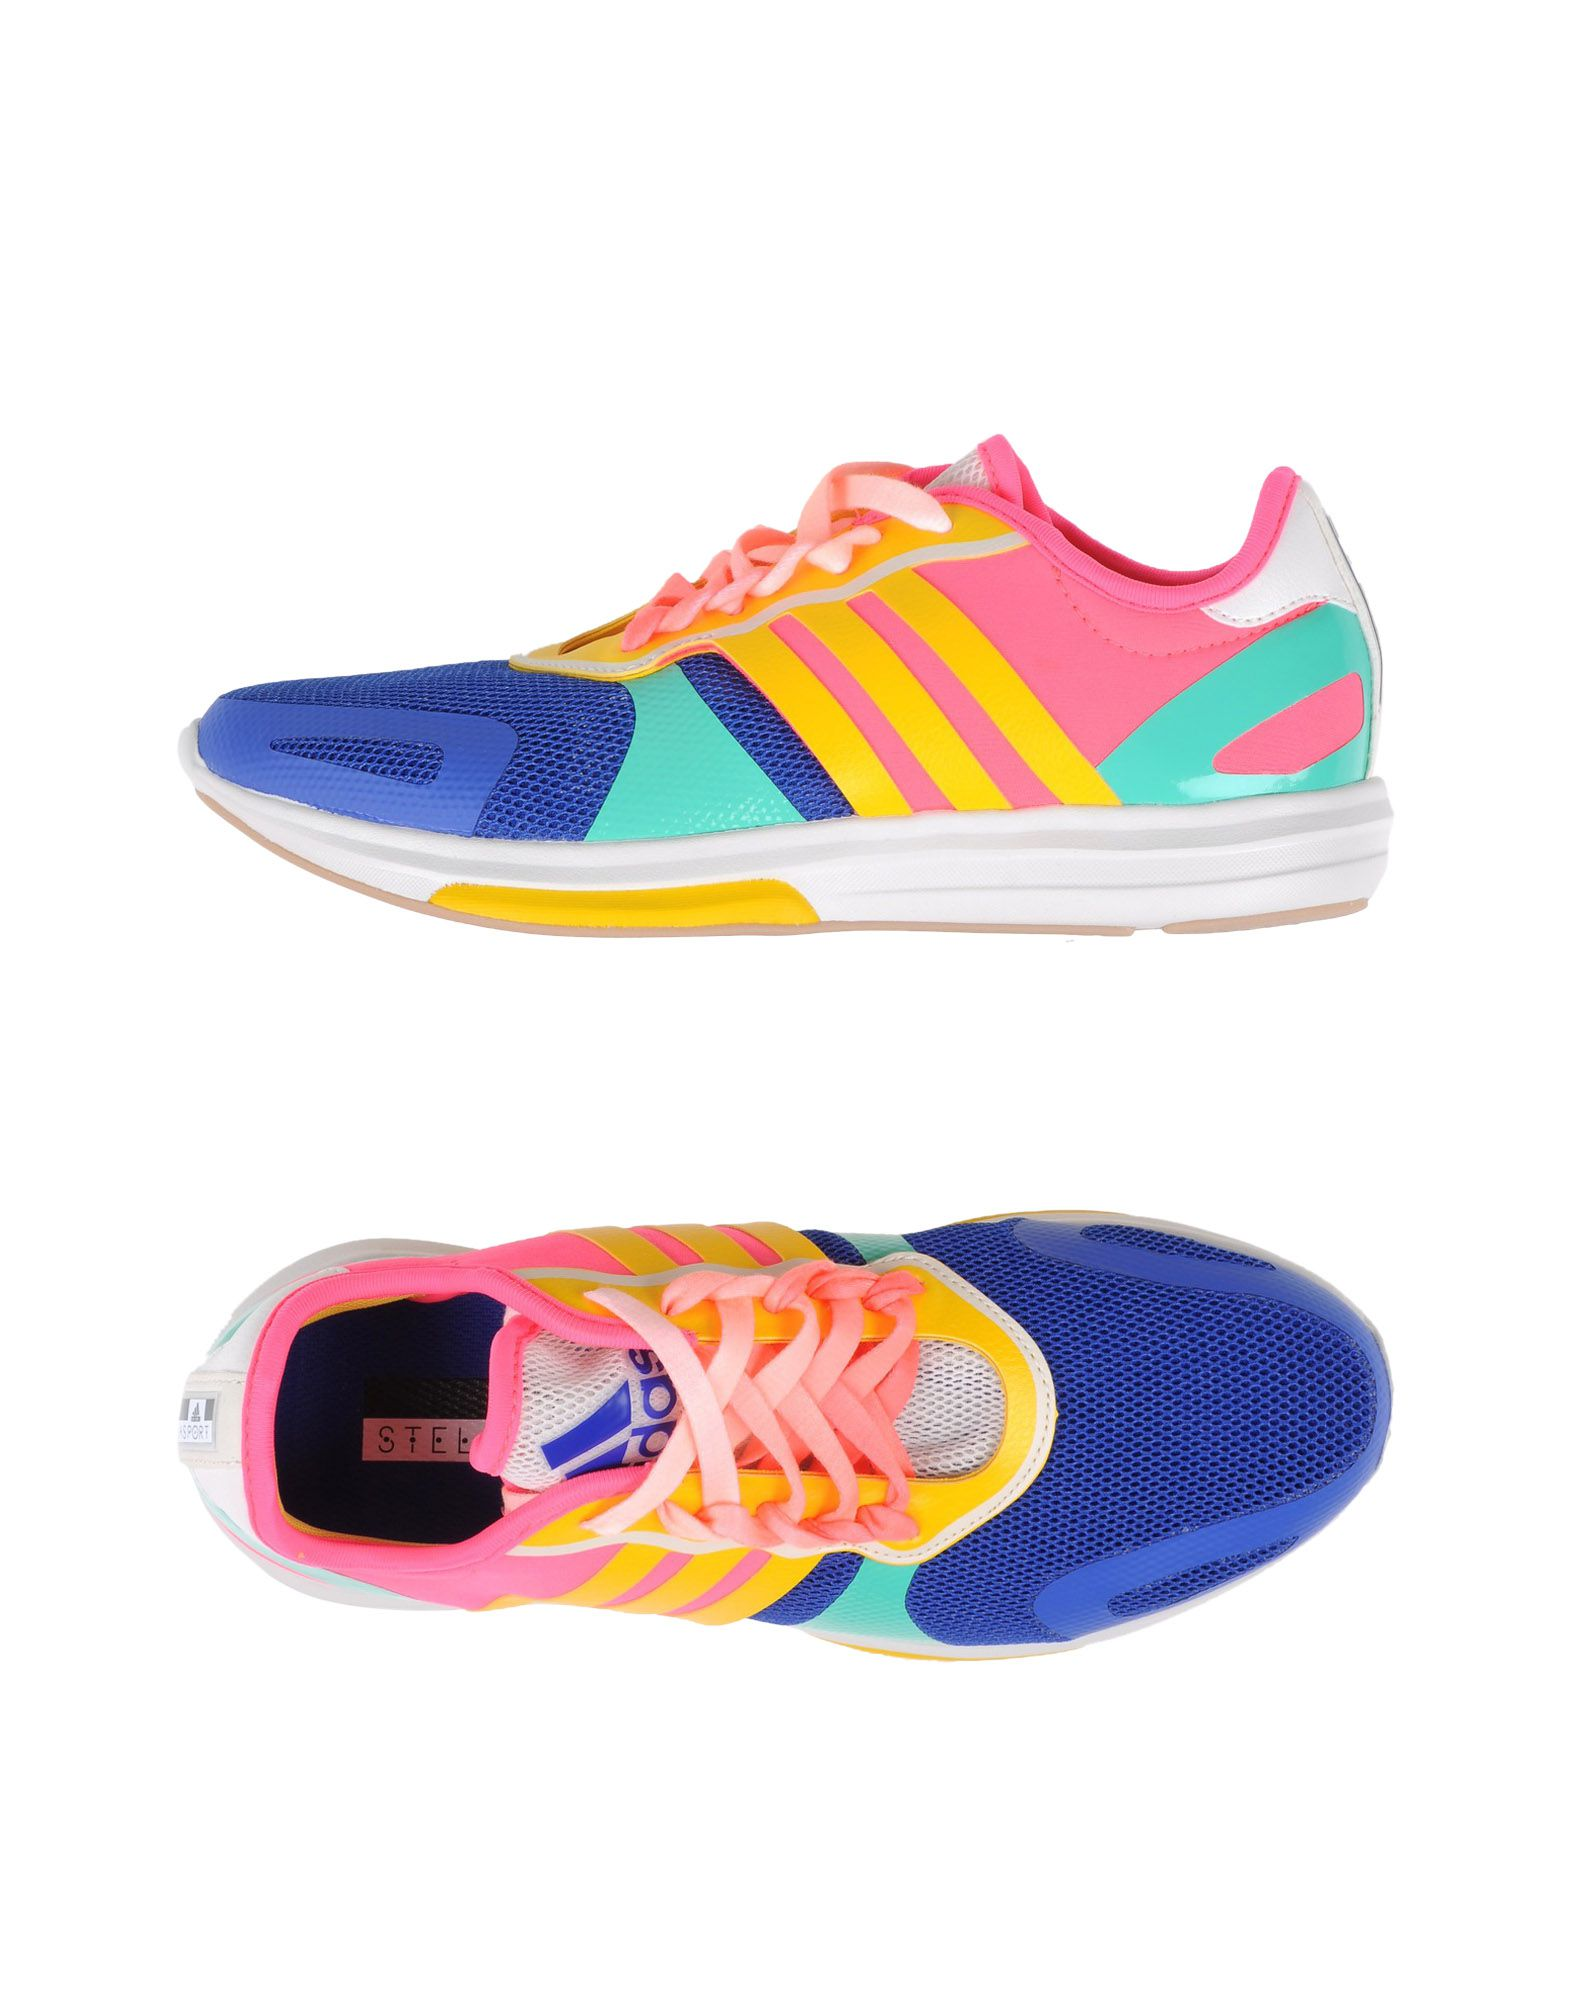 YVORI RUNNER - FOOTWEAR - Low-tops & sneakers adidas by Stella McCartney Free Shipping Excellent Shop For Cheap Price l7OBvLqX